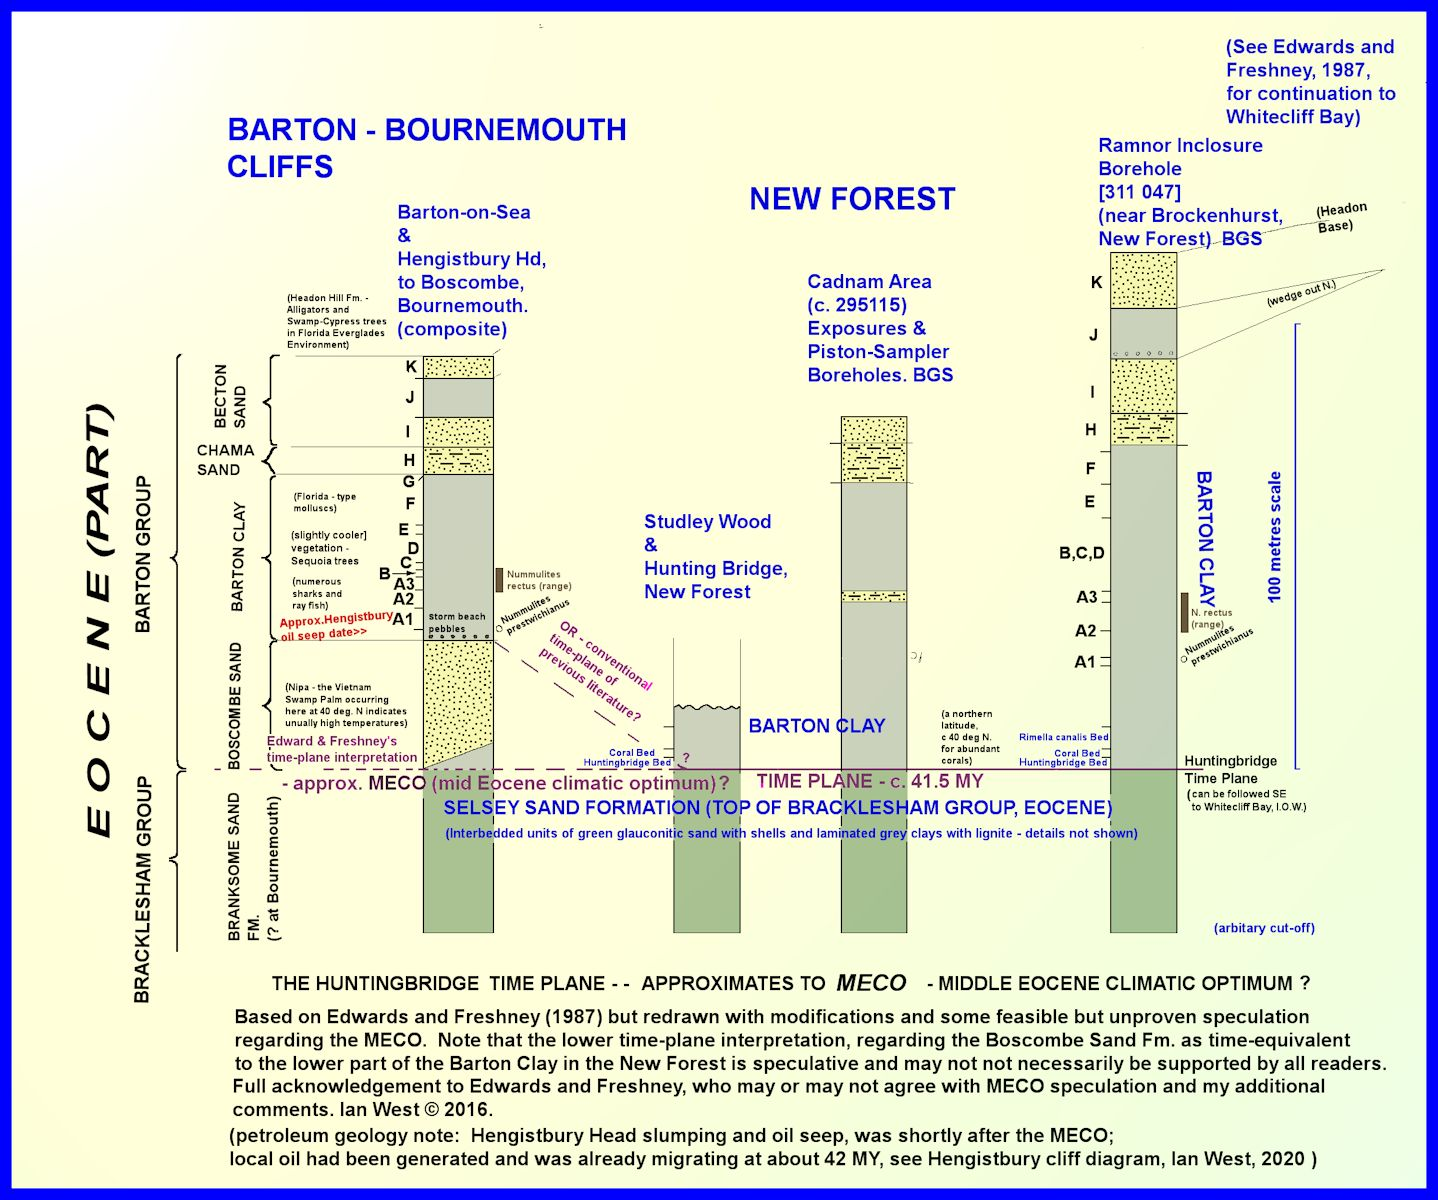 The MECO, Middle Eocene Climatic Optimum, time plane, shown in speculative manner for Studley Wood, Barton-on-Sea and other New Forest and Bournemouth regions